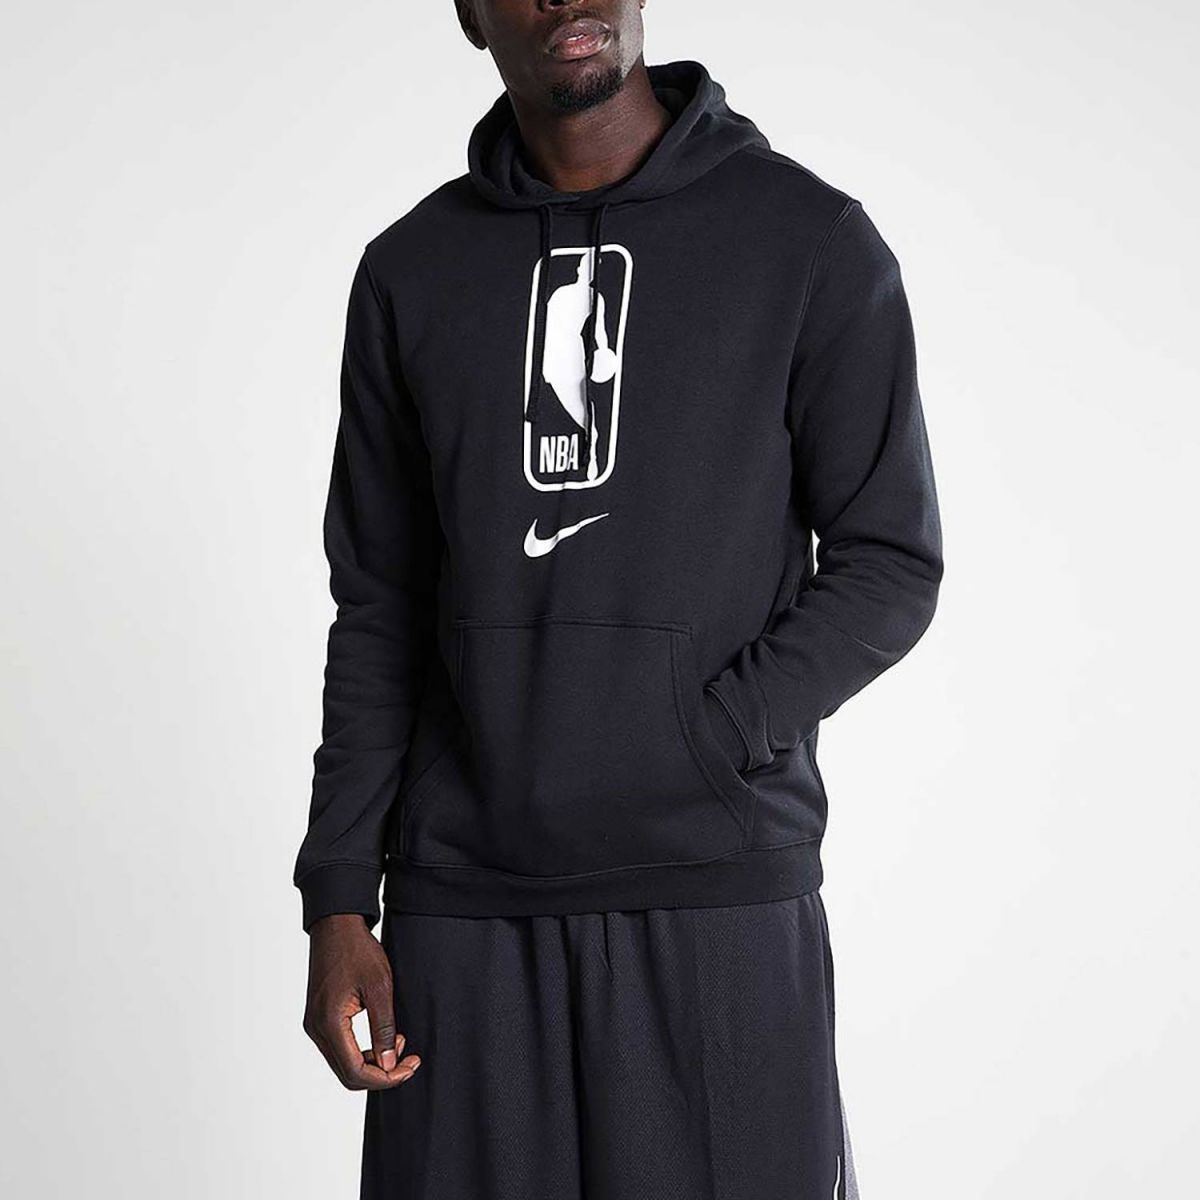 nba hoodies